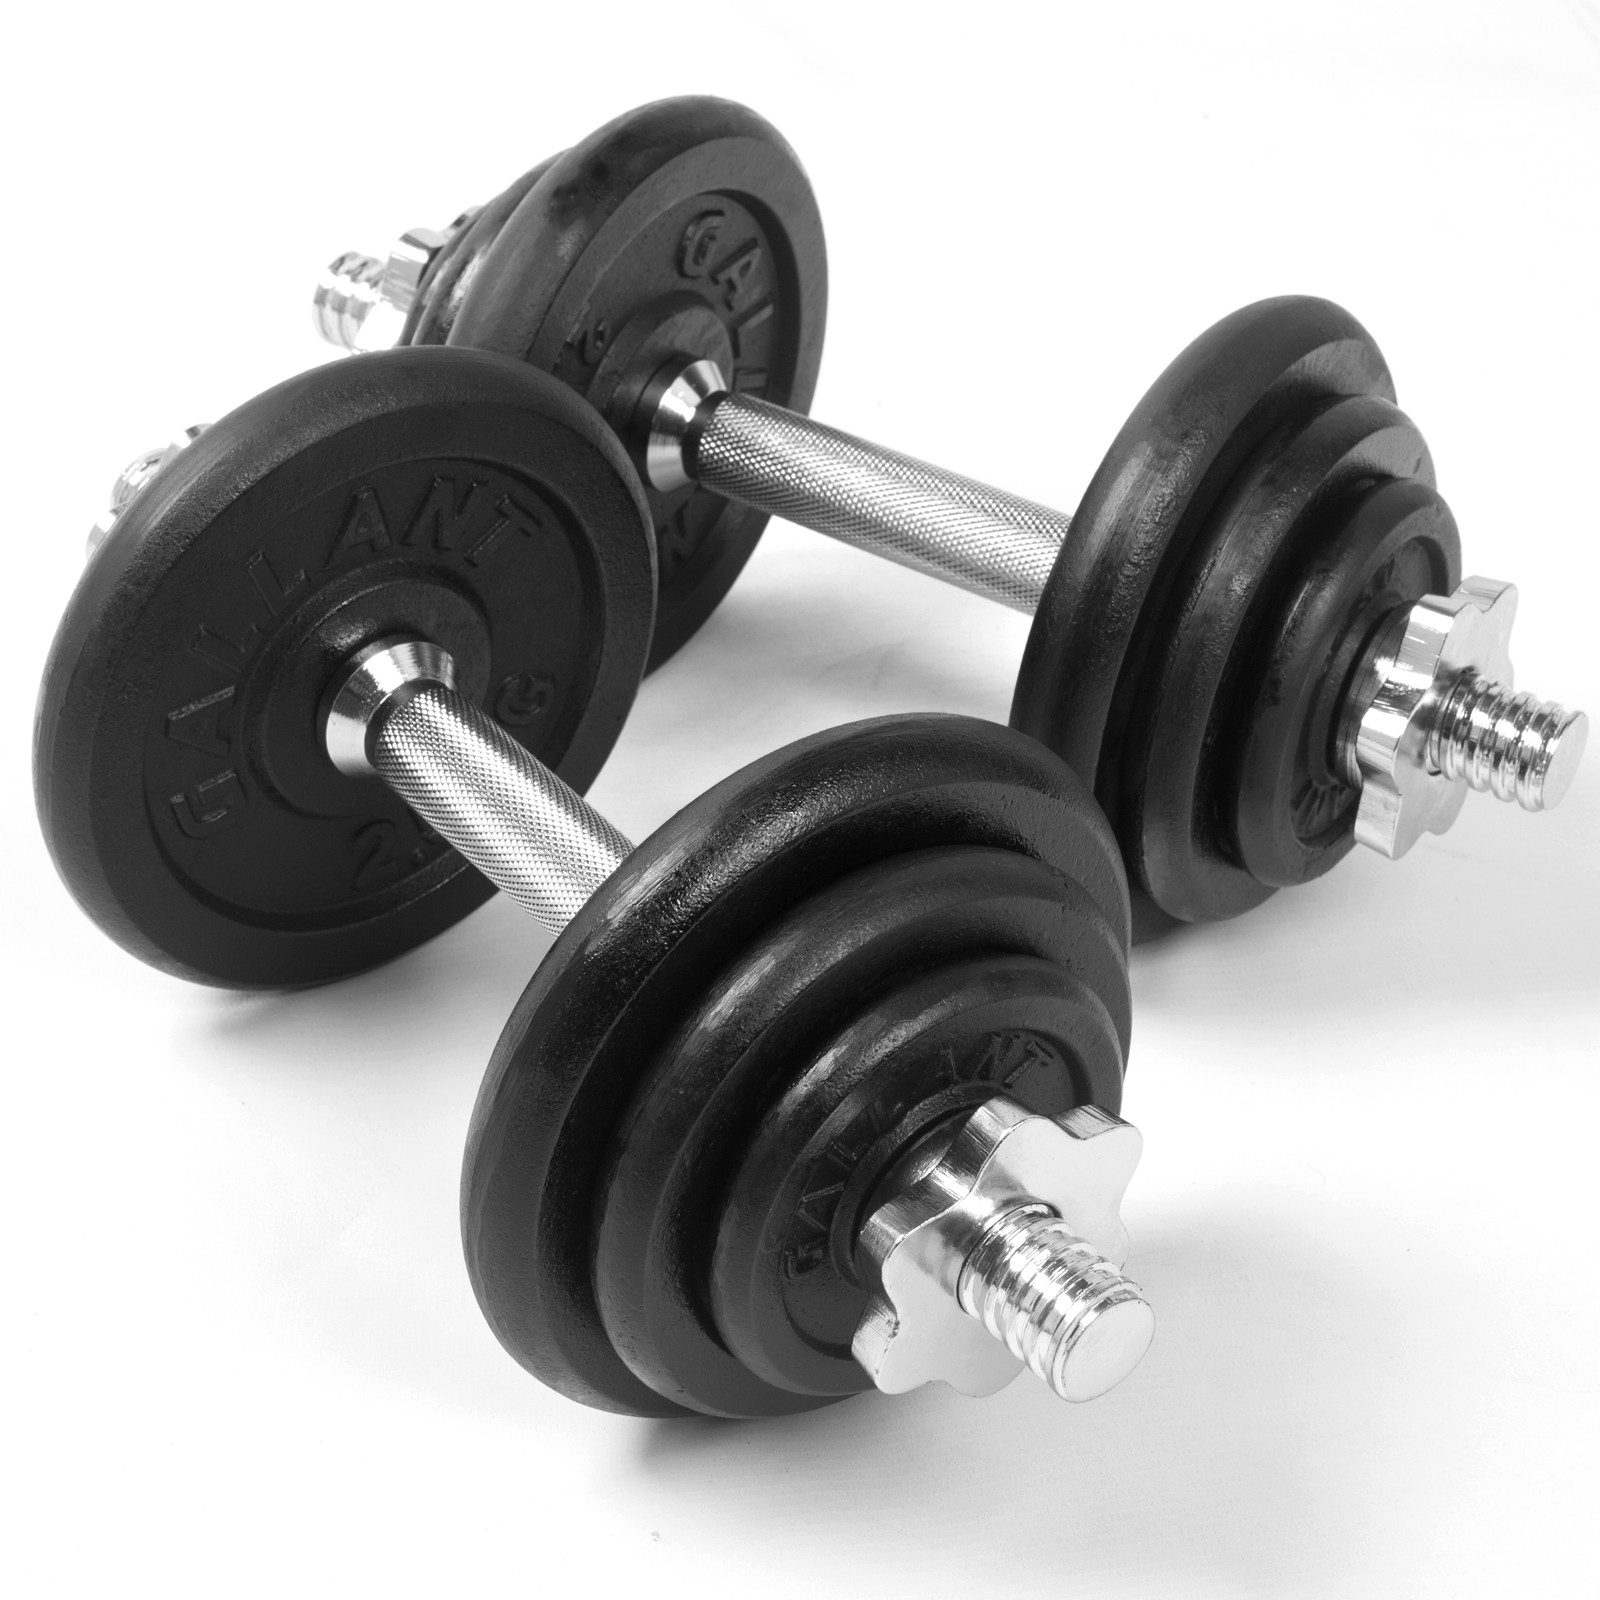 Free Weights Strength Training: Weights 20kg Dumbbell Set Dumbbells Fitness Free Training